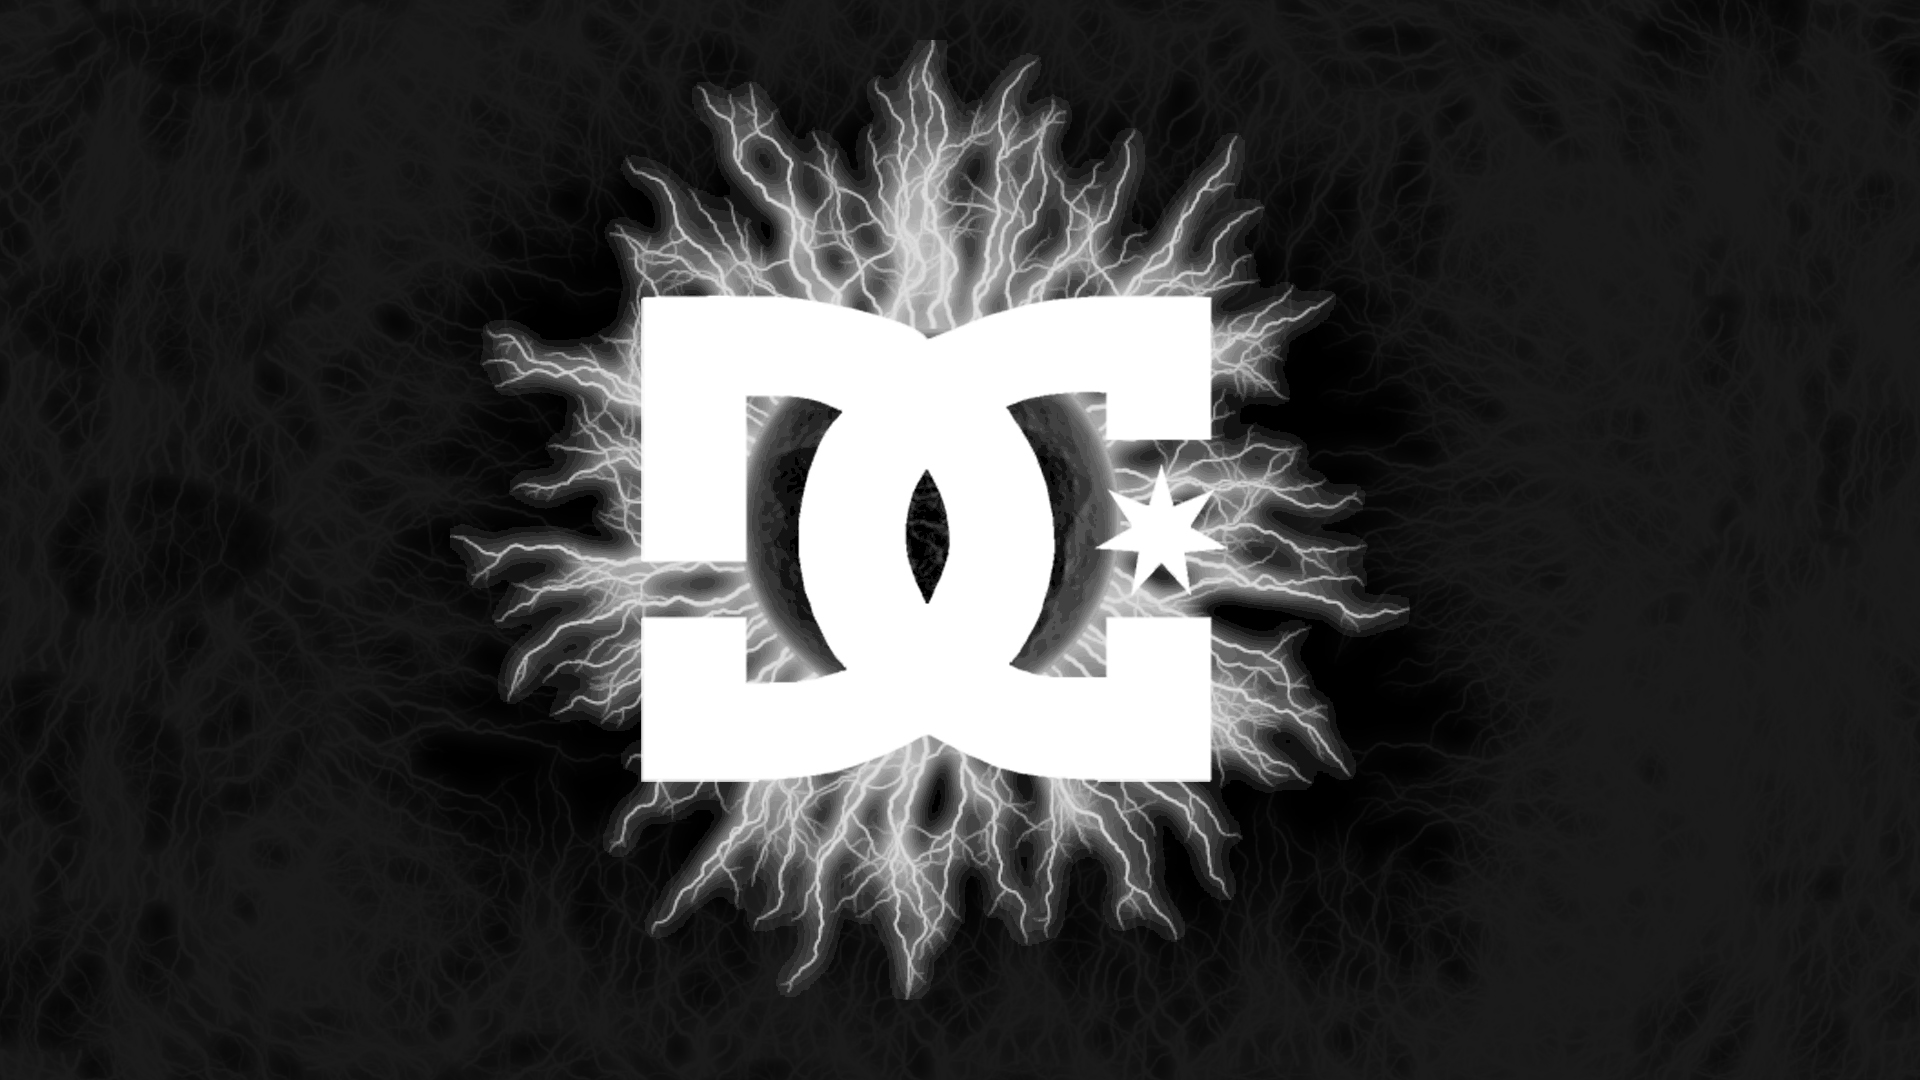 Dc shoes full hd wallpaper and background image 1920x1080 id413586 products dc shoes products wallpaper voltagebd Gallery